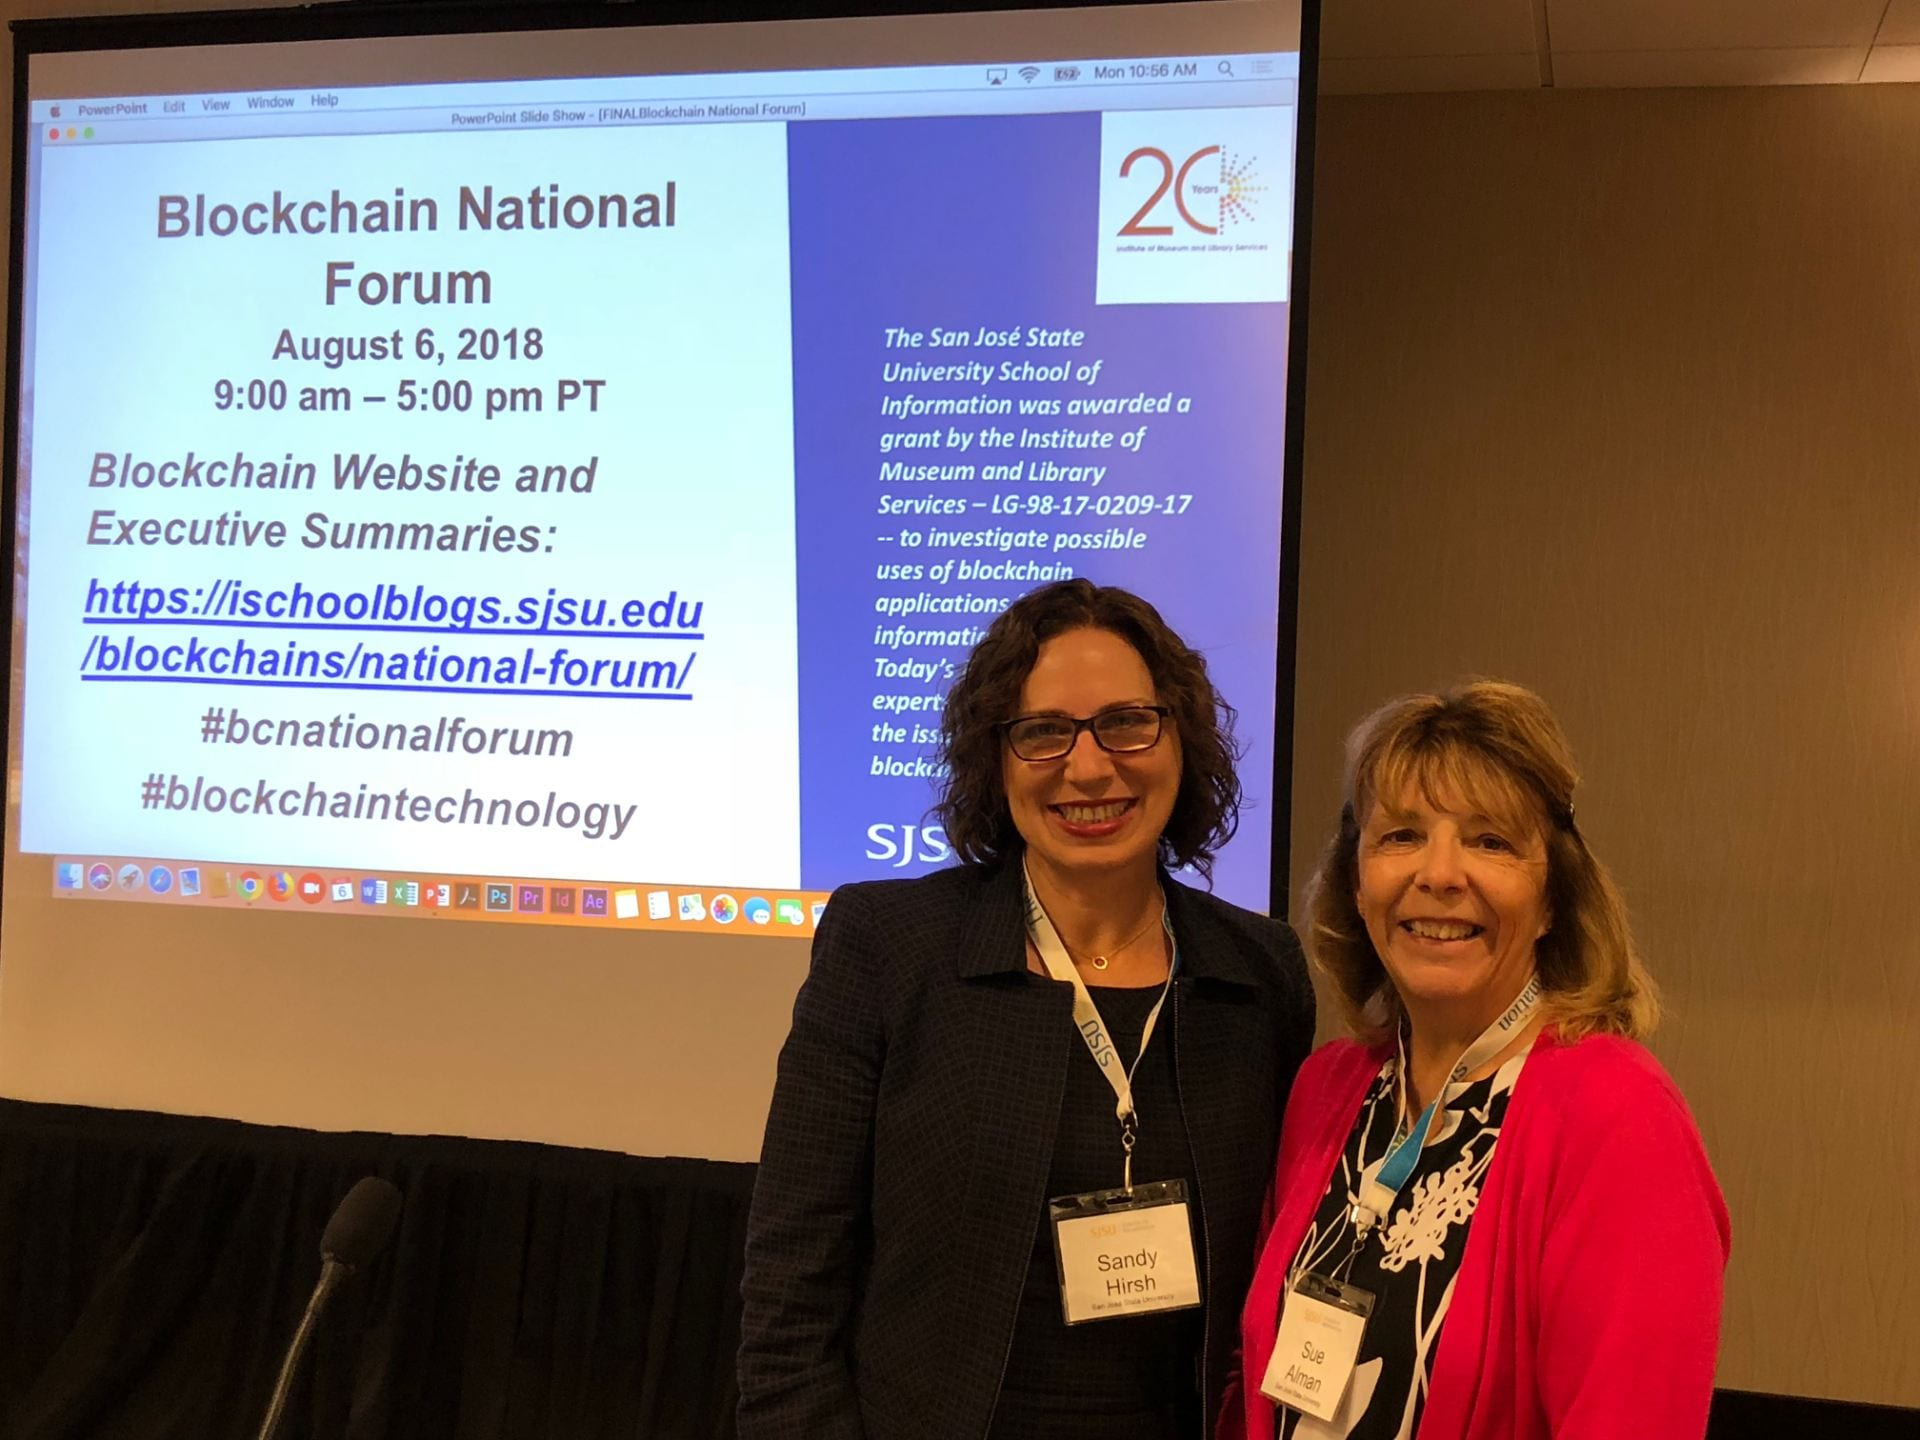 Dr. Sandy Hirsh, left, and Dr. Sue Alman, presented their research at the National Blockchain Forum in August 2018.